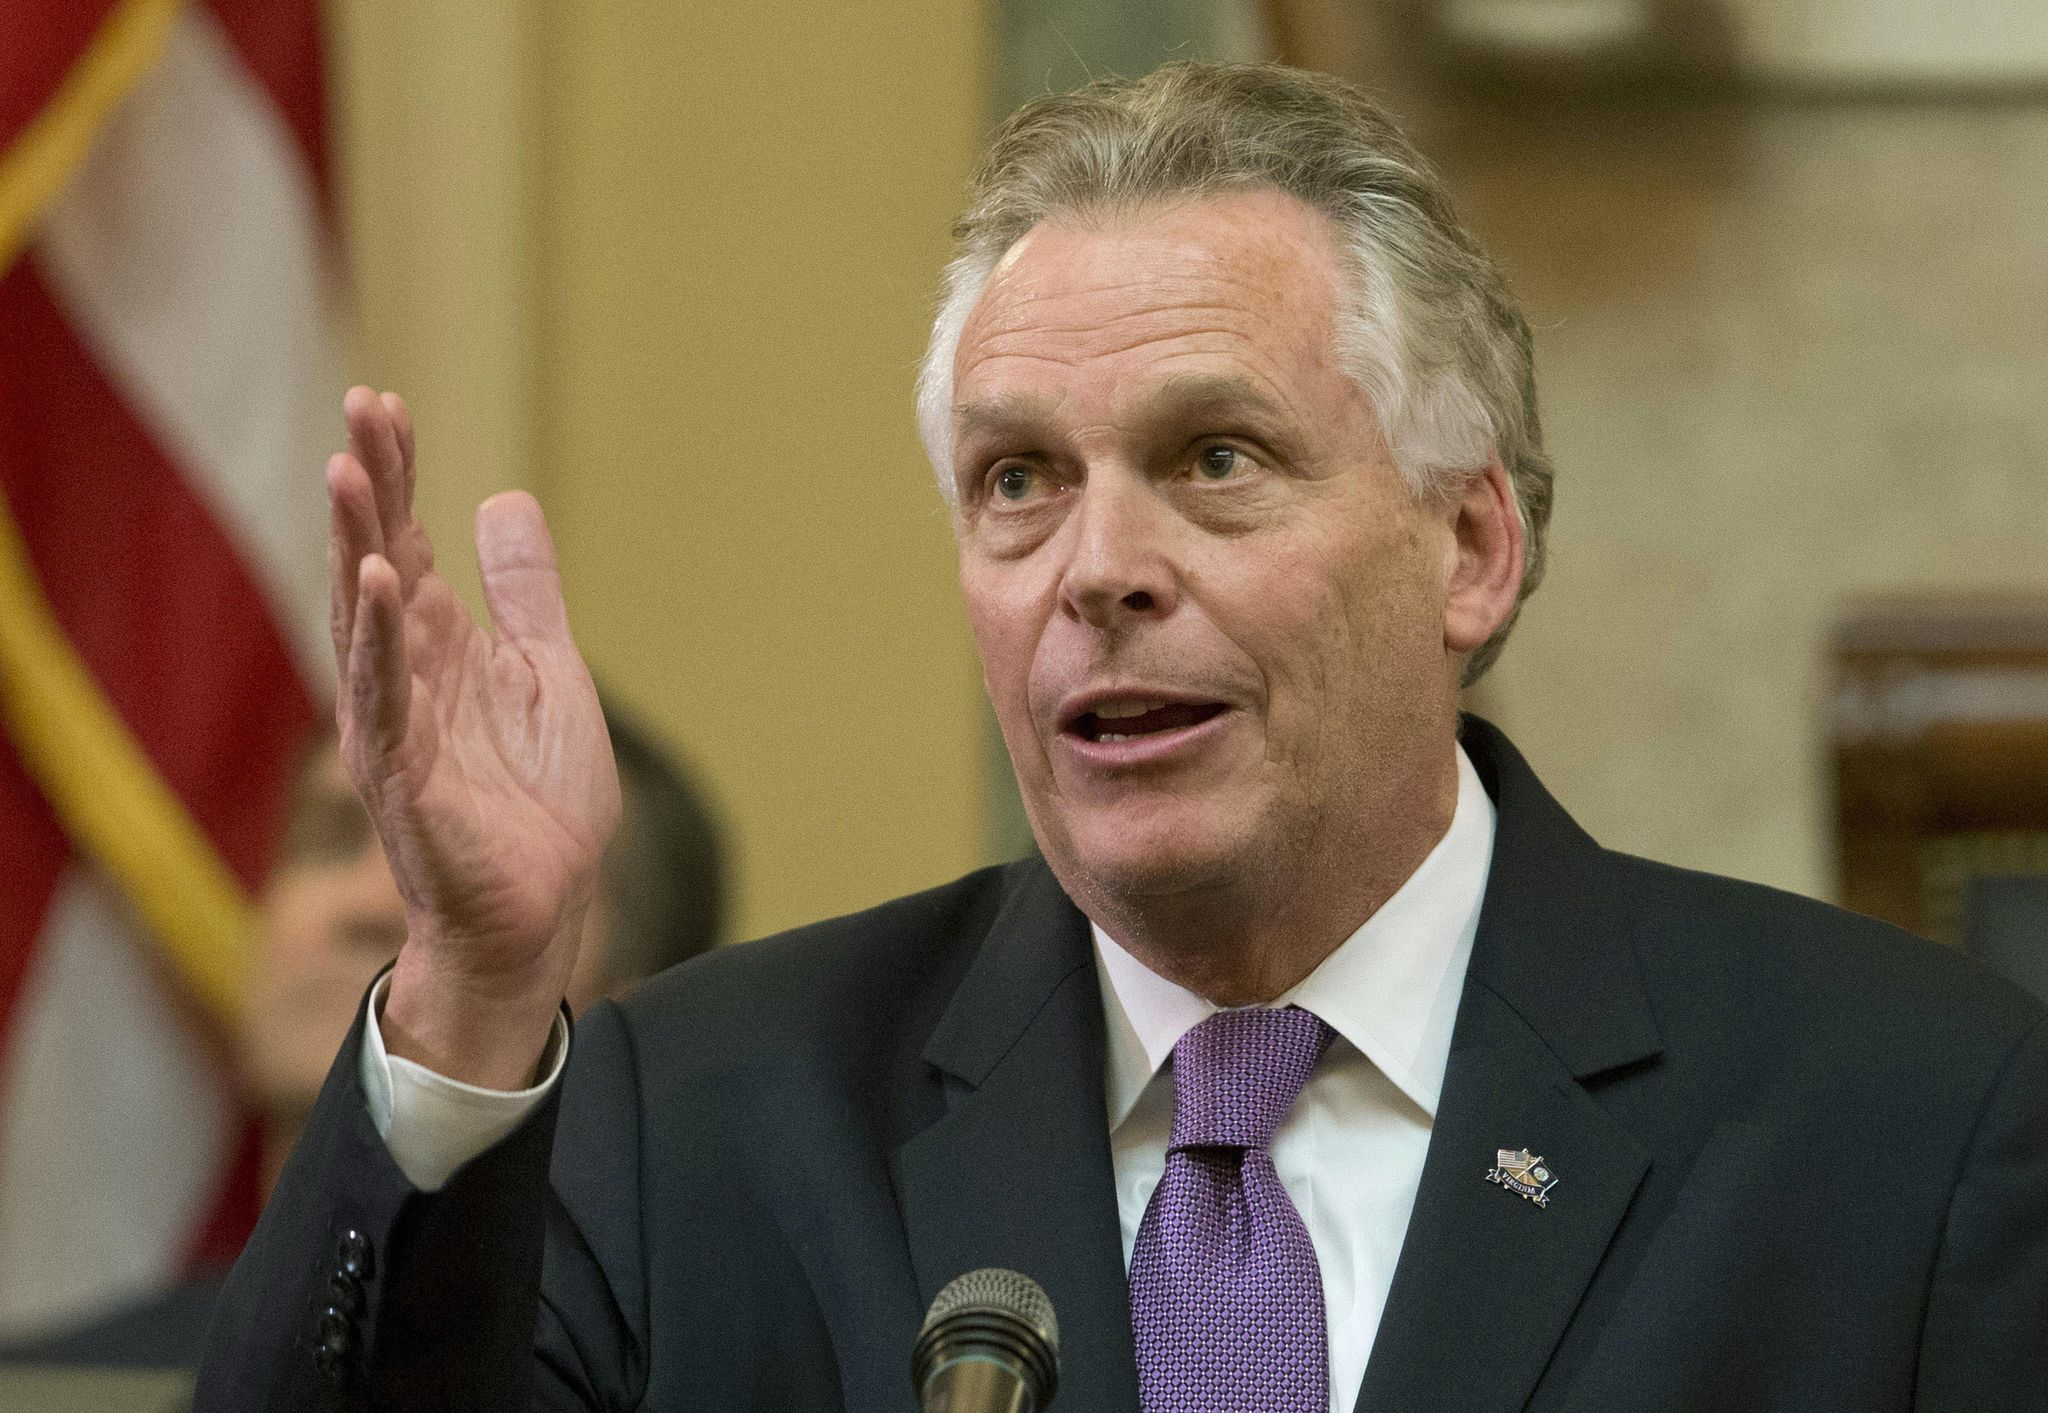 Democrat Terry McAuliffe sides with WaPo: Green New Deal 'unrealistic'